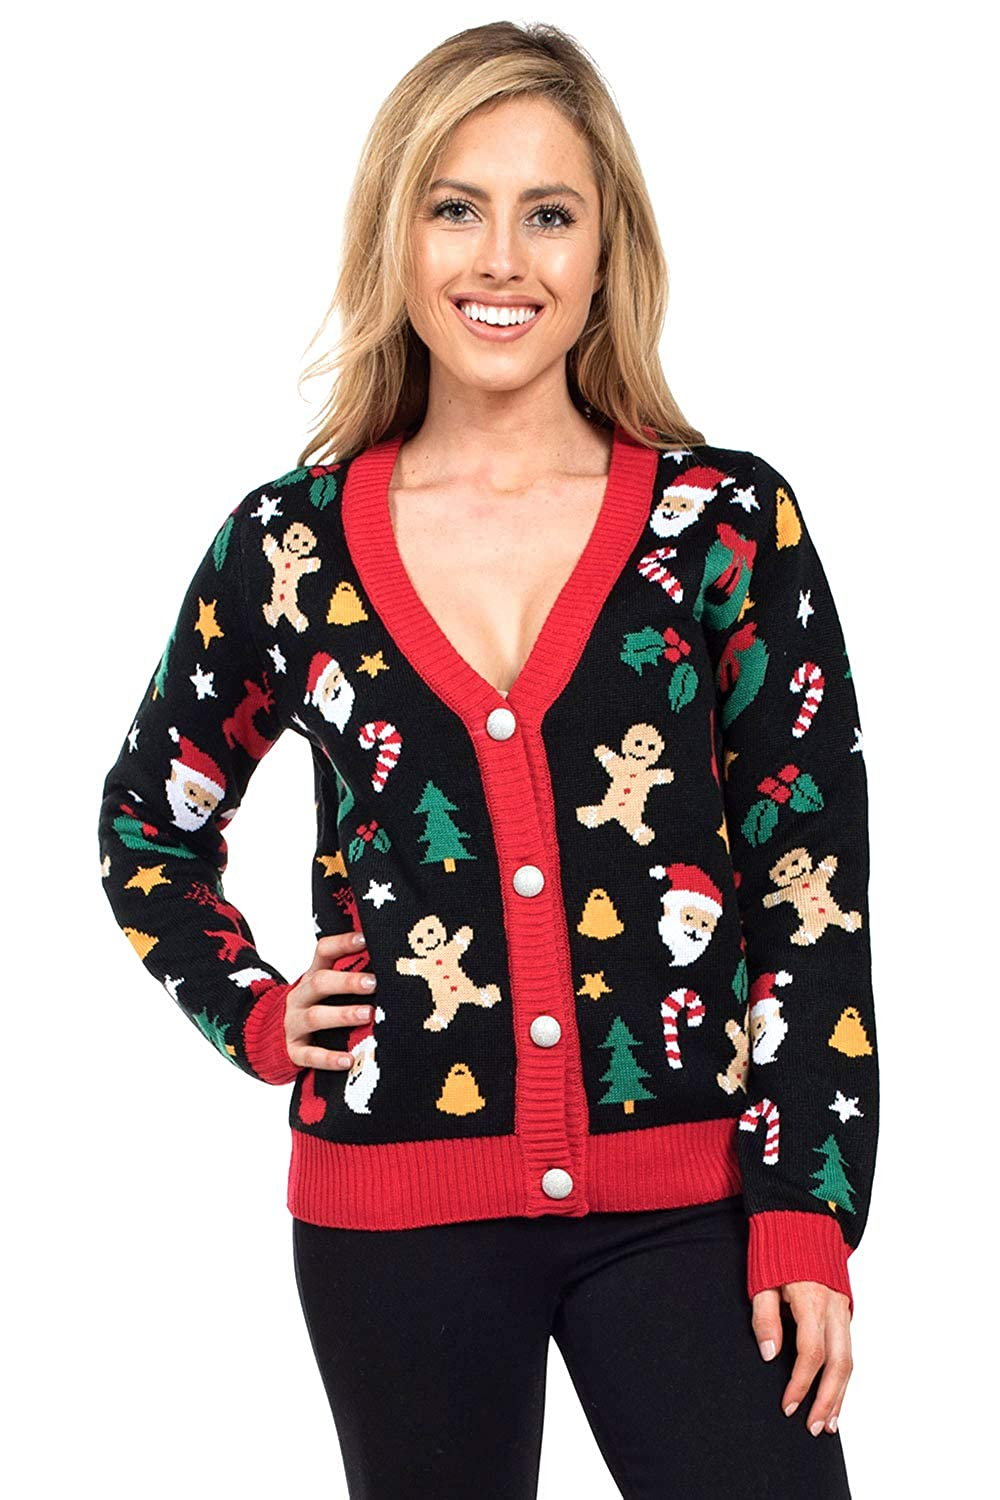 Tipsy Elves Women's Cookie Cutter Ugly Christmas Sweater  Cute Christmas Cardigan Female Black